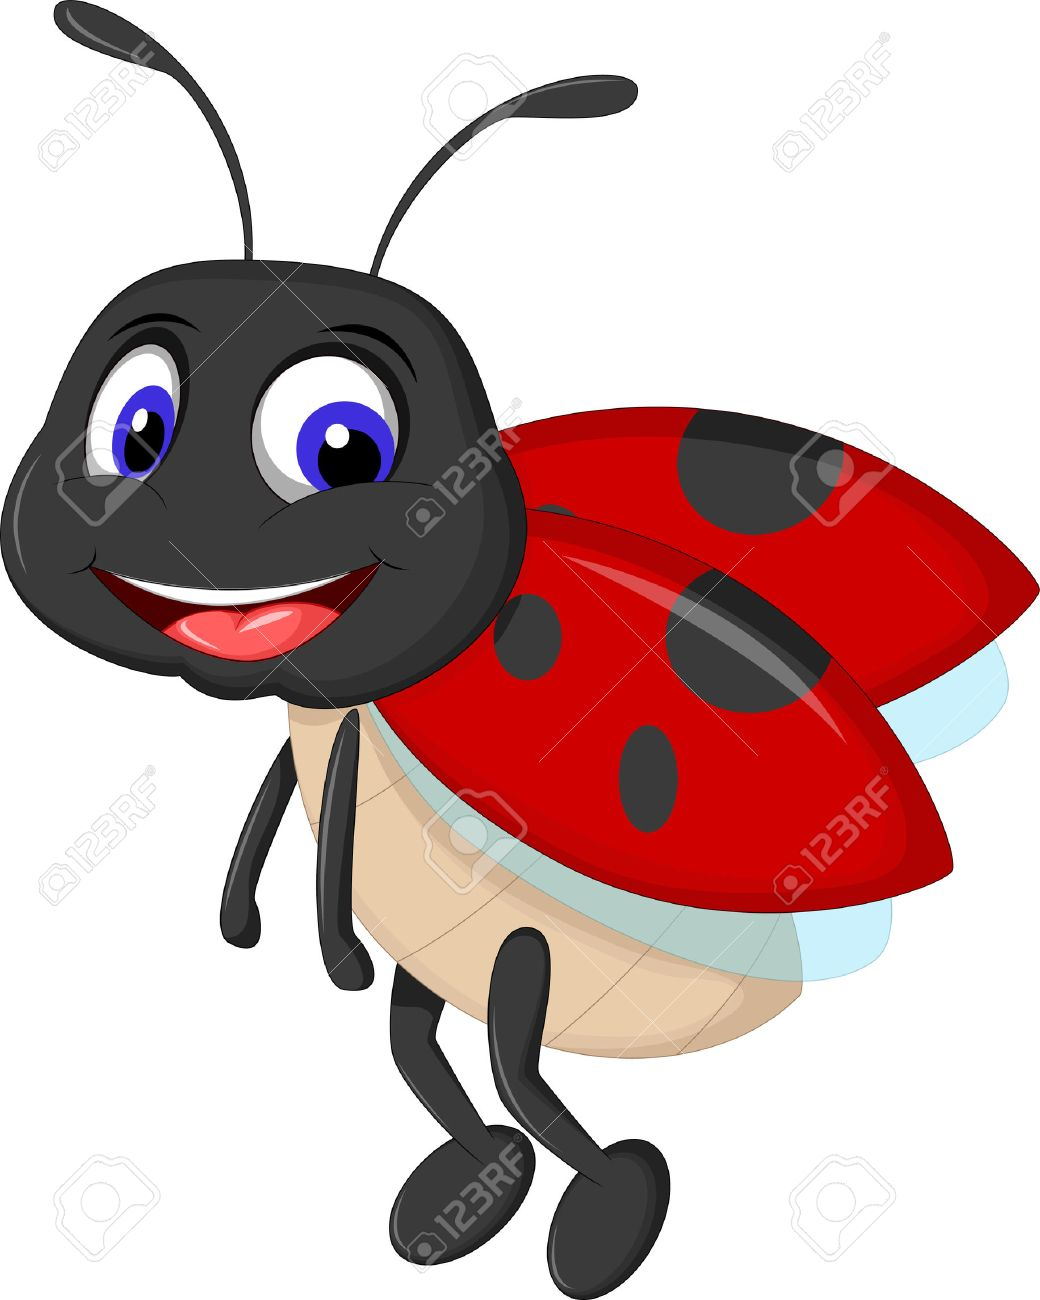 1040x1300 Cute Ladybugs Waving Cartoon Royalty Free Cliparts, Vectors,